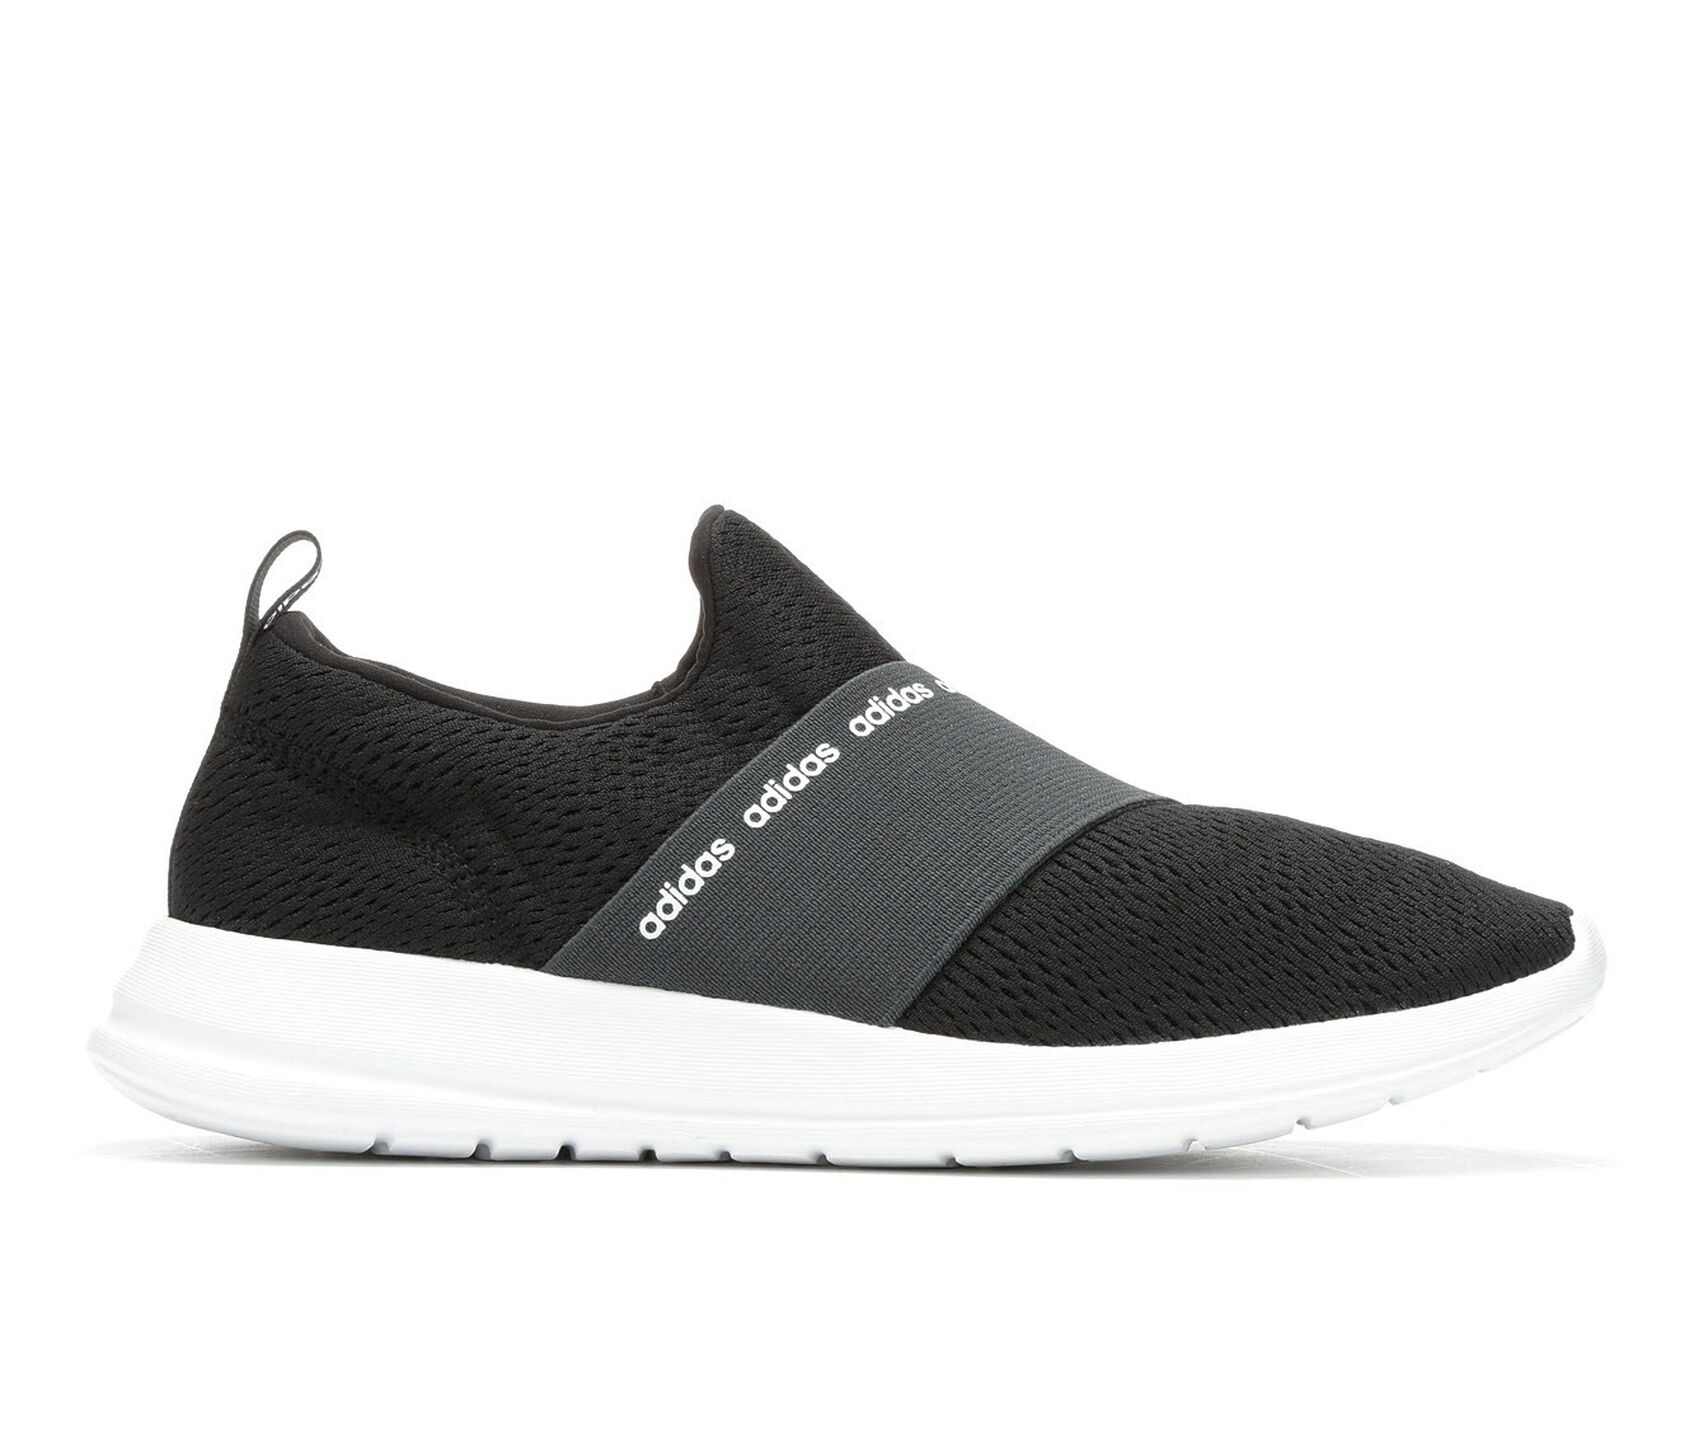 lpr for sneakers orthopedic demi enough vionic wedges tpe day comfortable office standing by the sonoma healthy blog all shoes are work dressy best yet comforter at